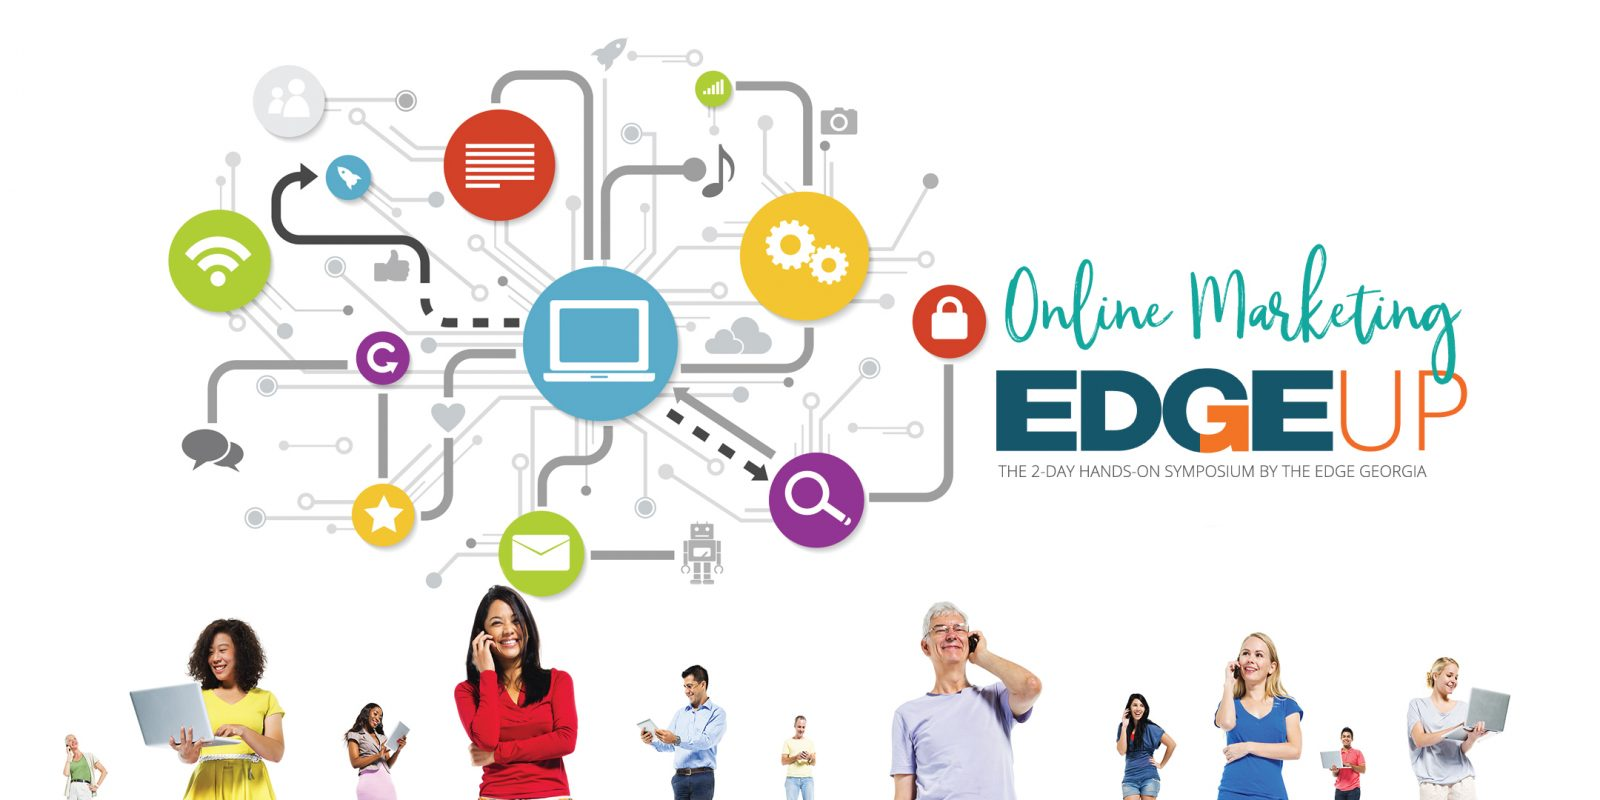 The Edge | Online Marketing